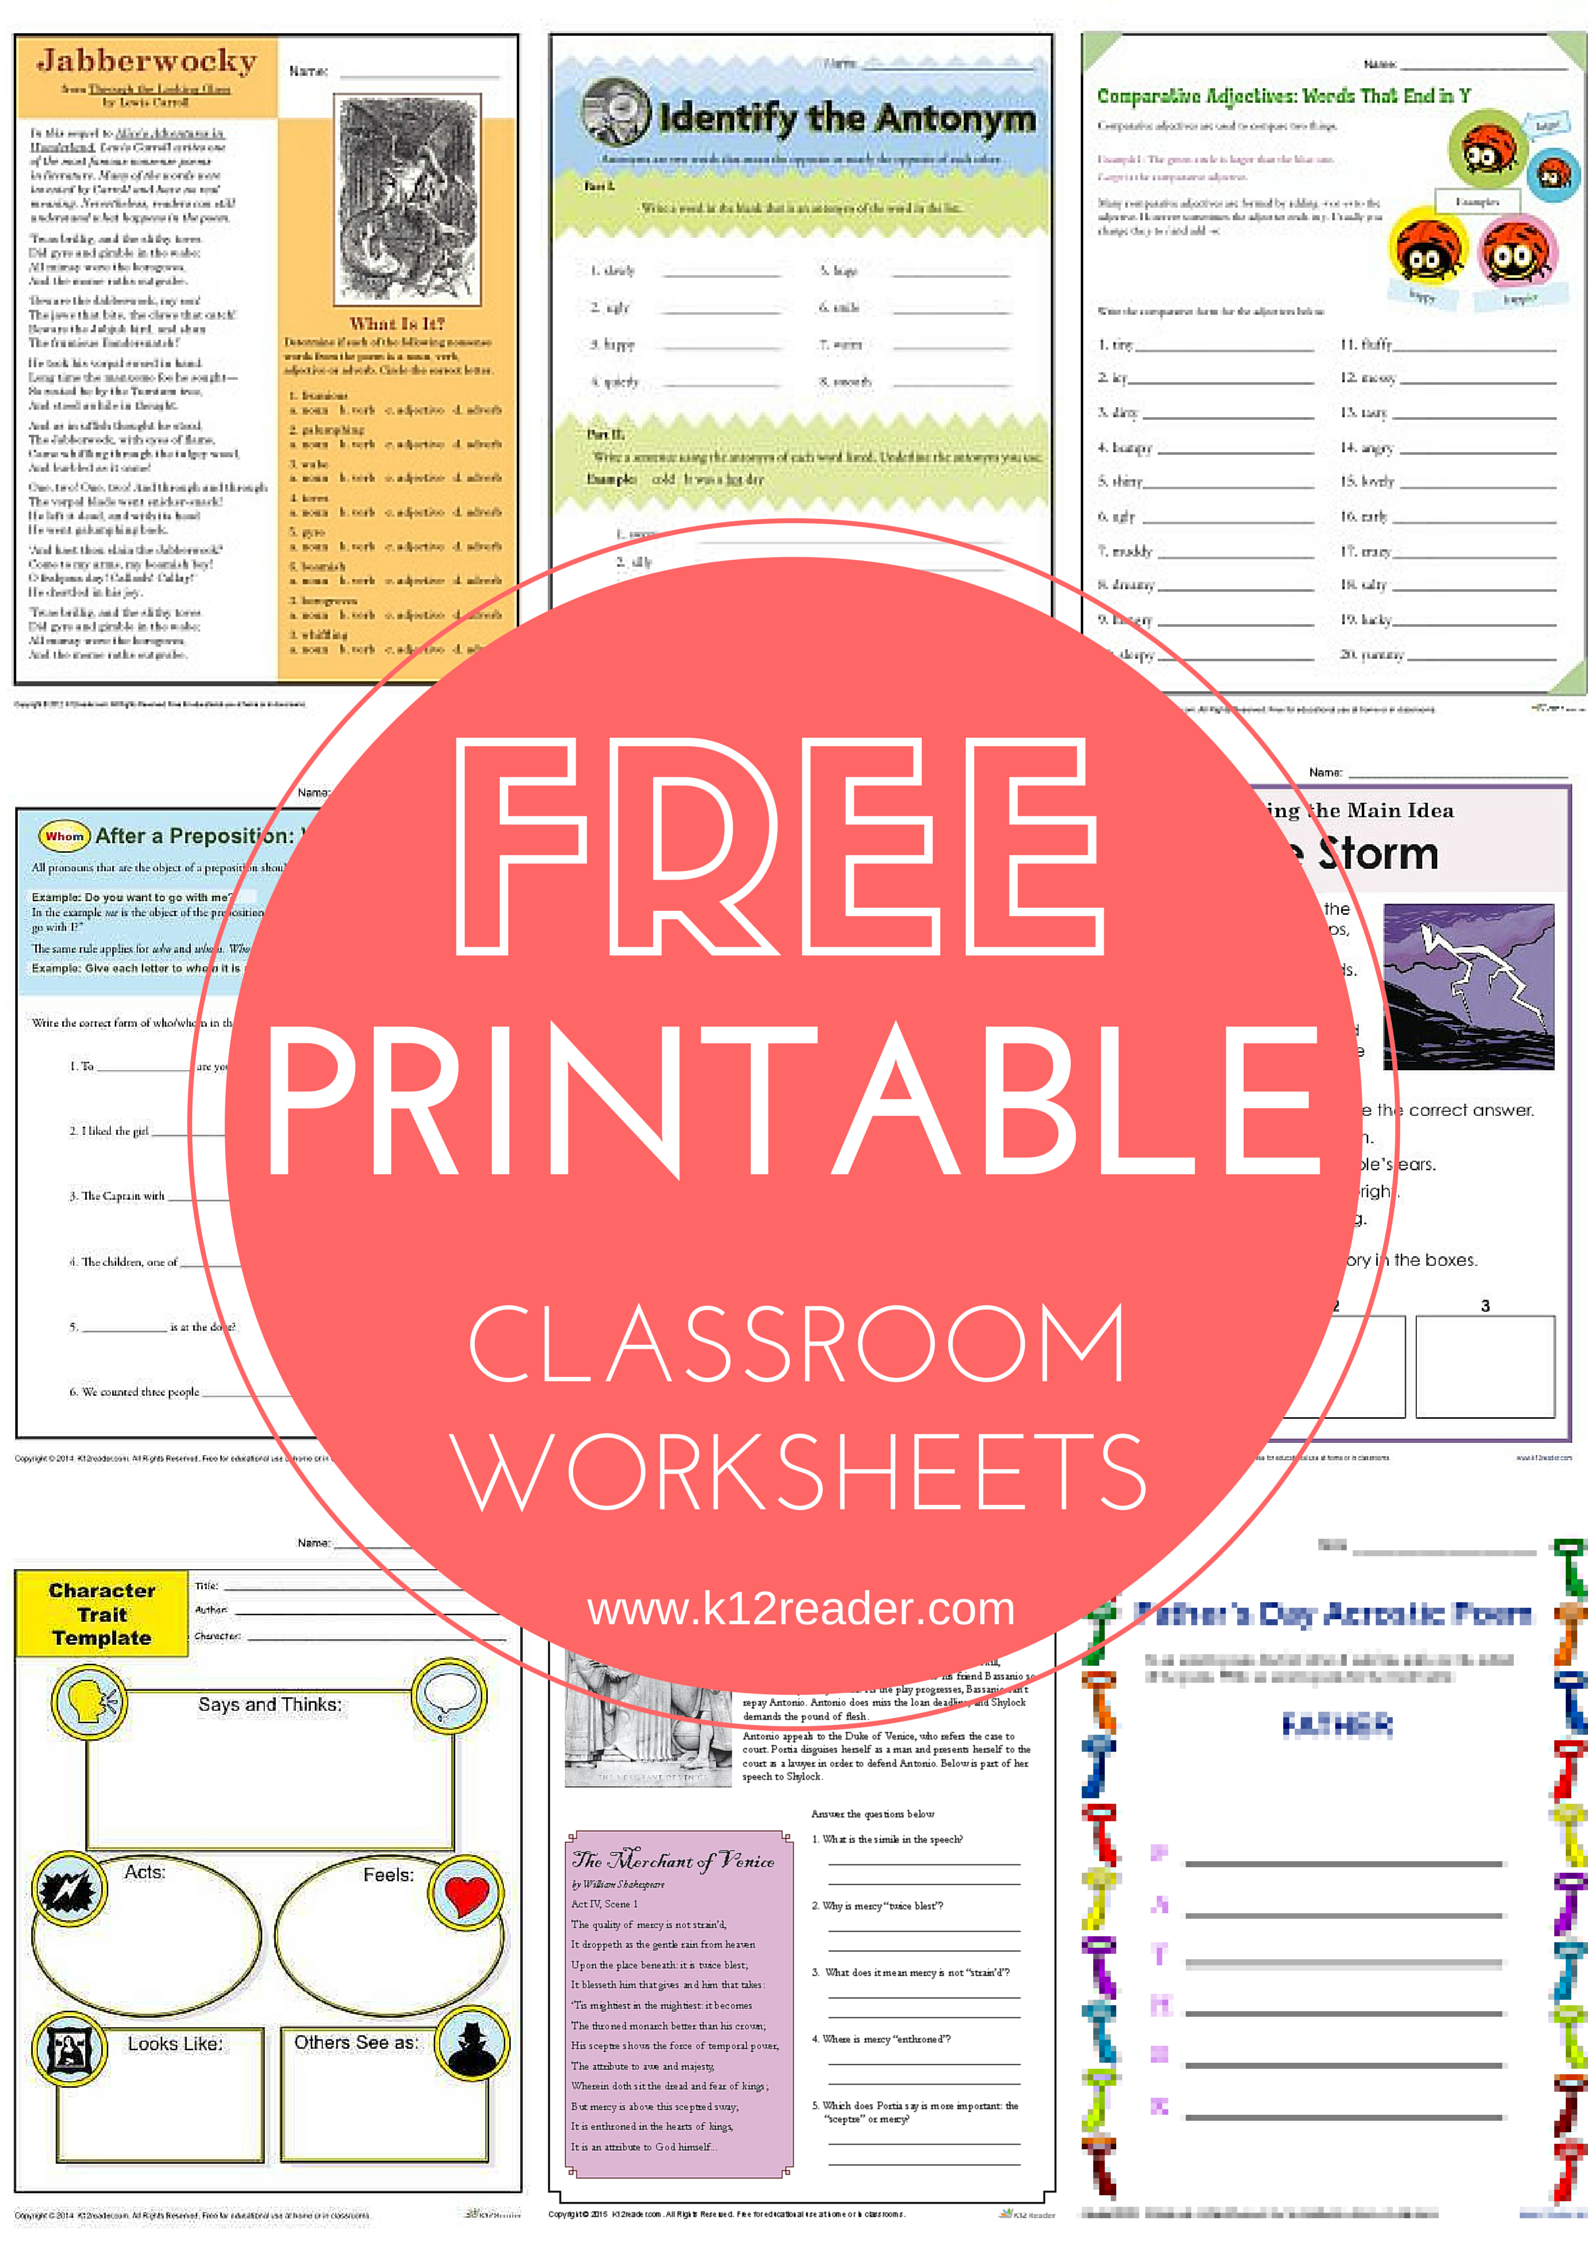 Hundreds Of Free Educational Printables Perfect For Homeschooling And The Classroom